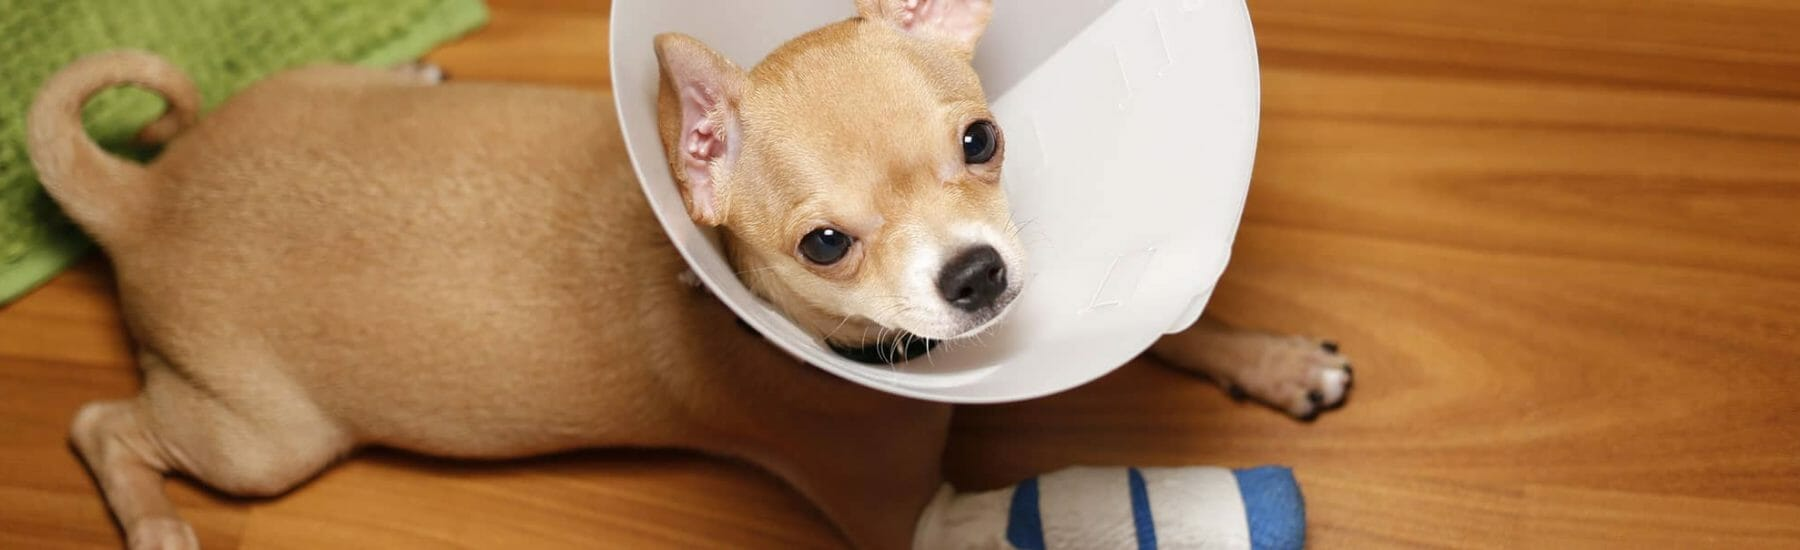 Small brown dog with cone on their head